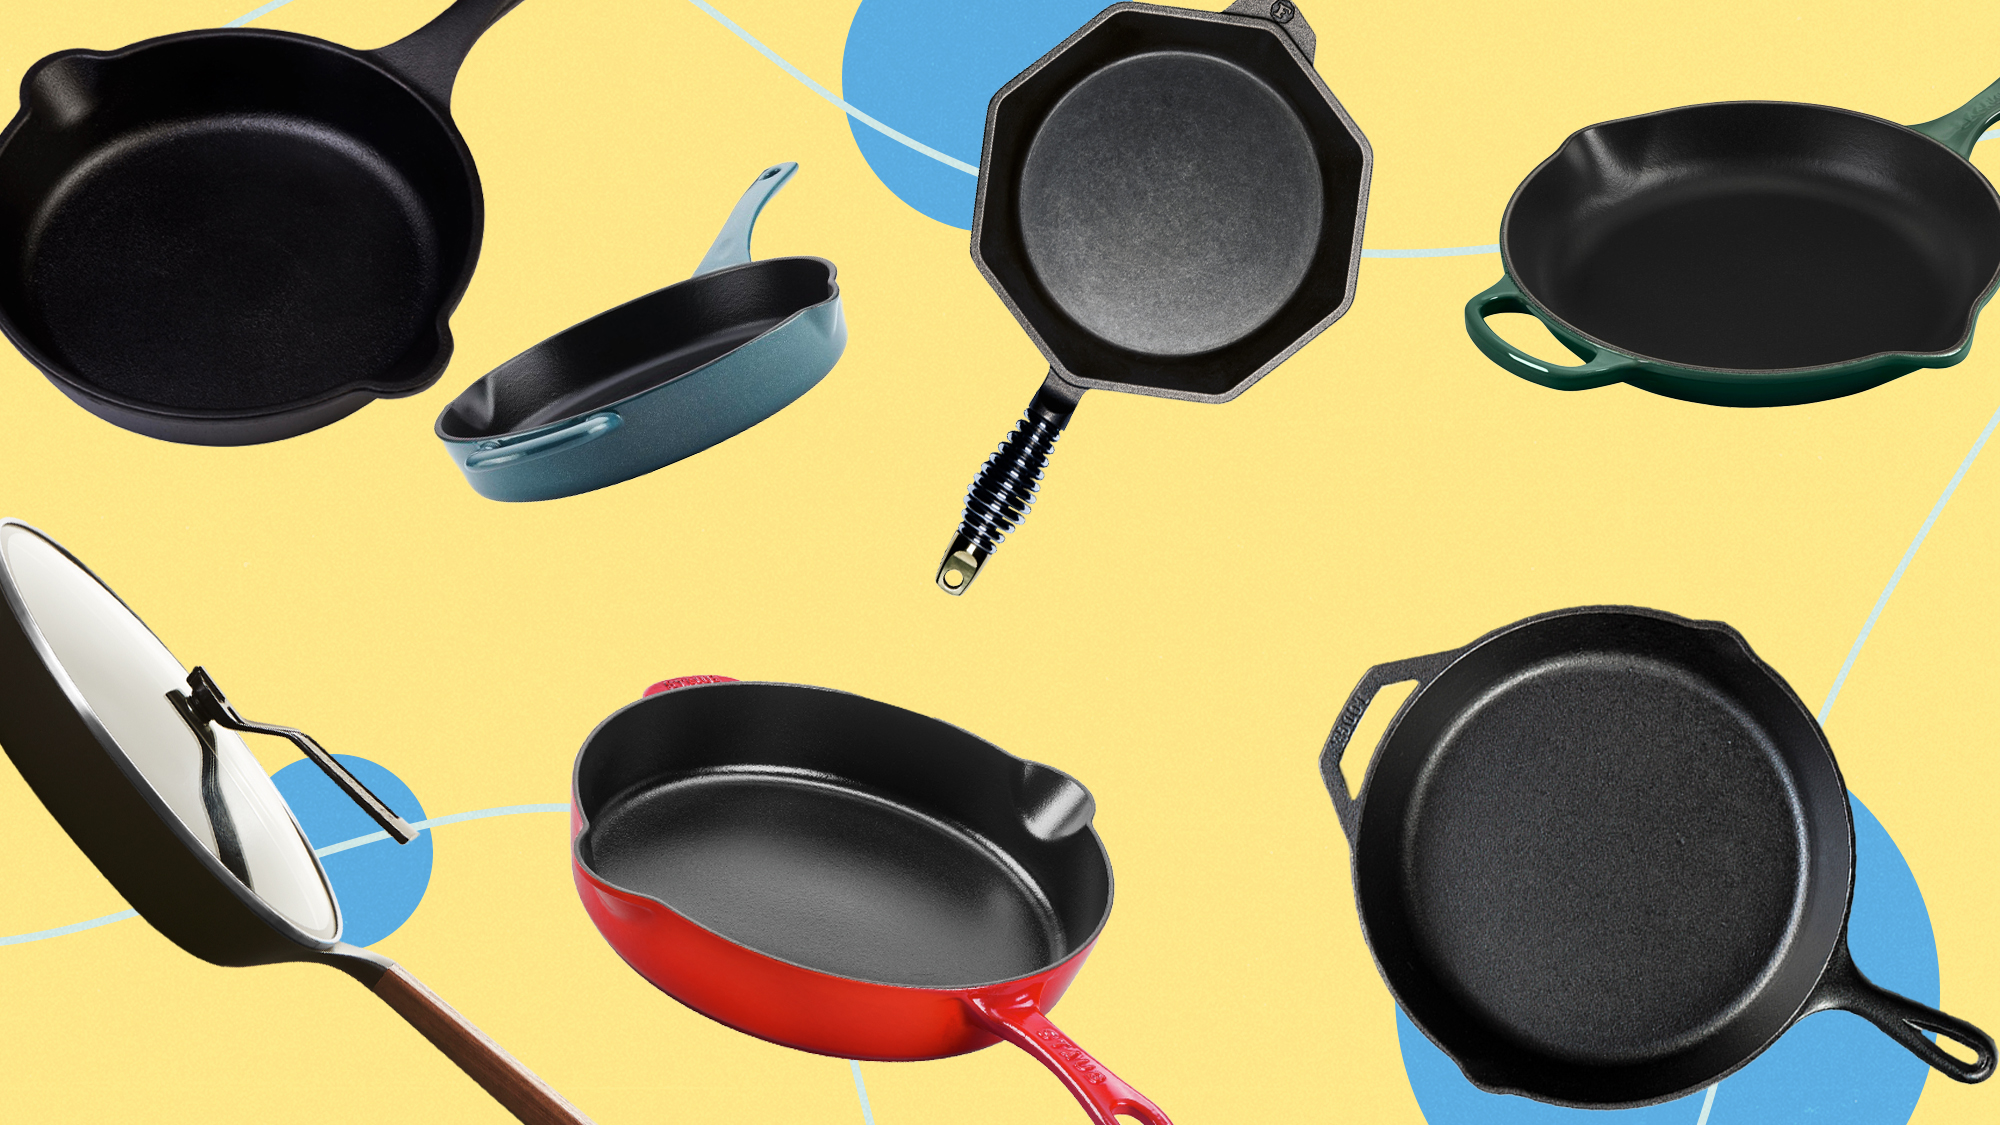 A selection of cast Iron pans on a designed background